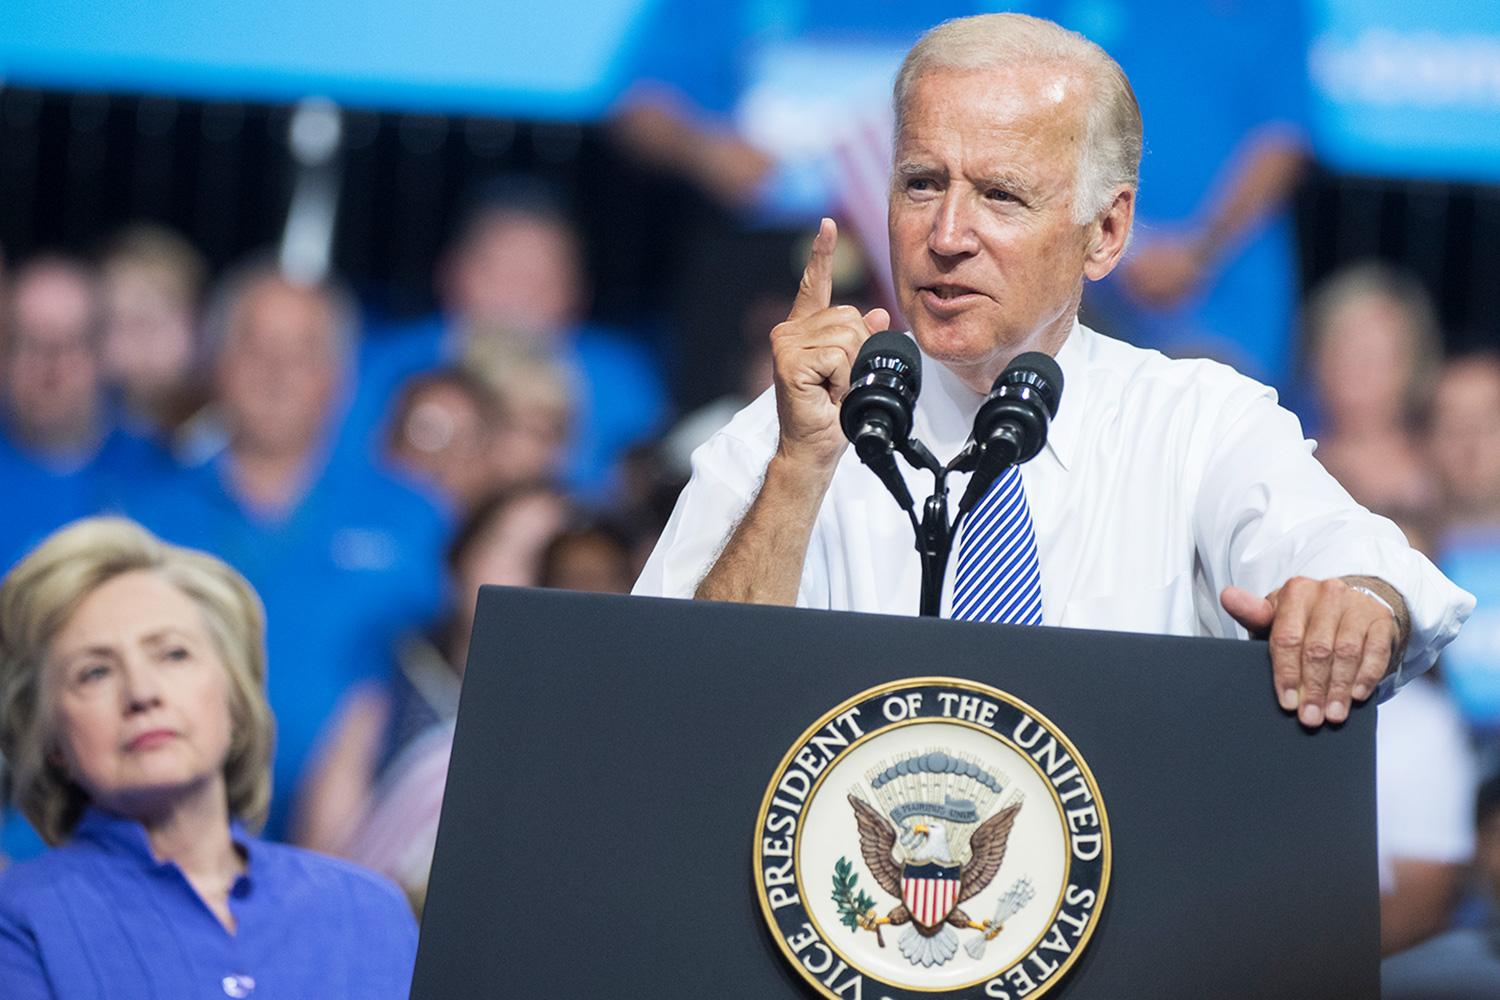 Vice President Joe Biden and Democratic presidential nominee Hillary Clinton